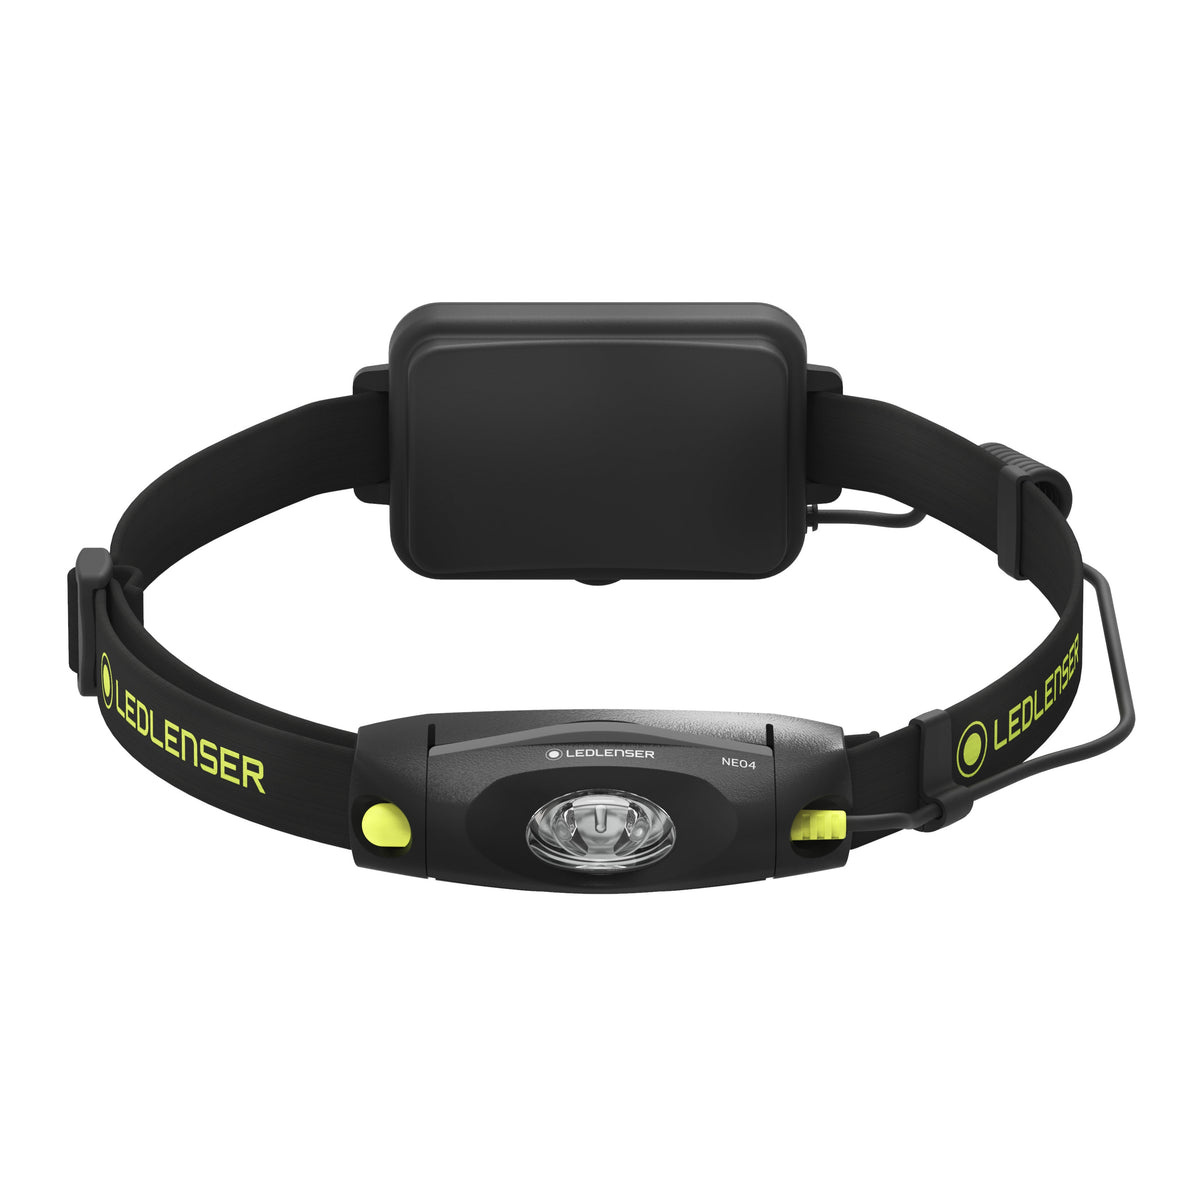 LED Lenser NEO4 LED Headlamp